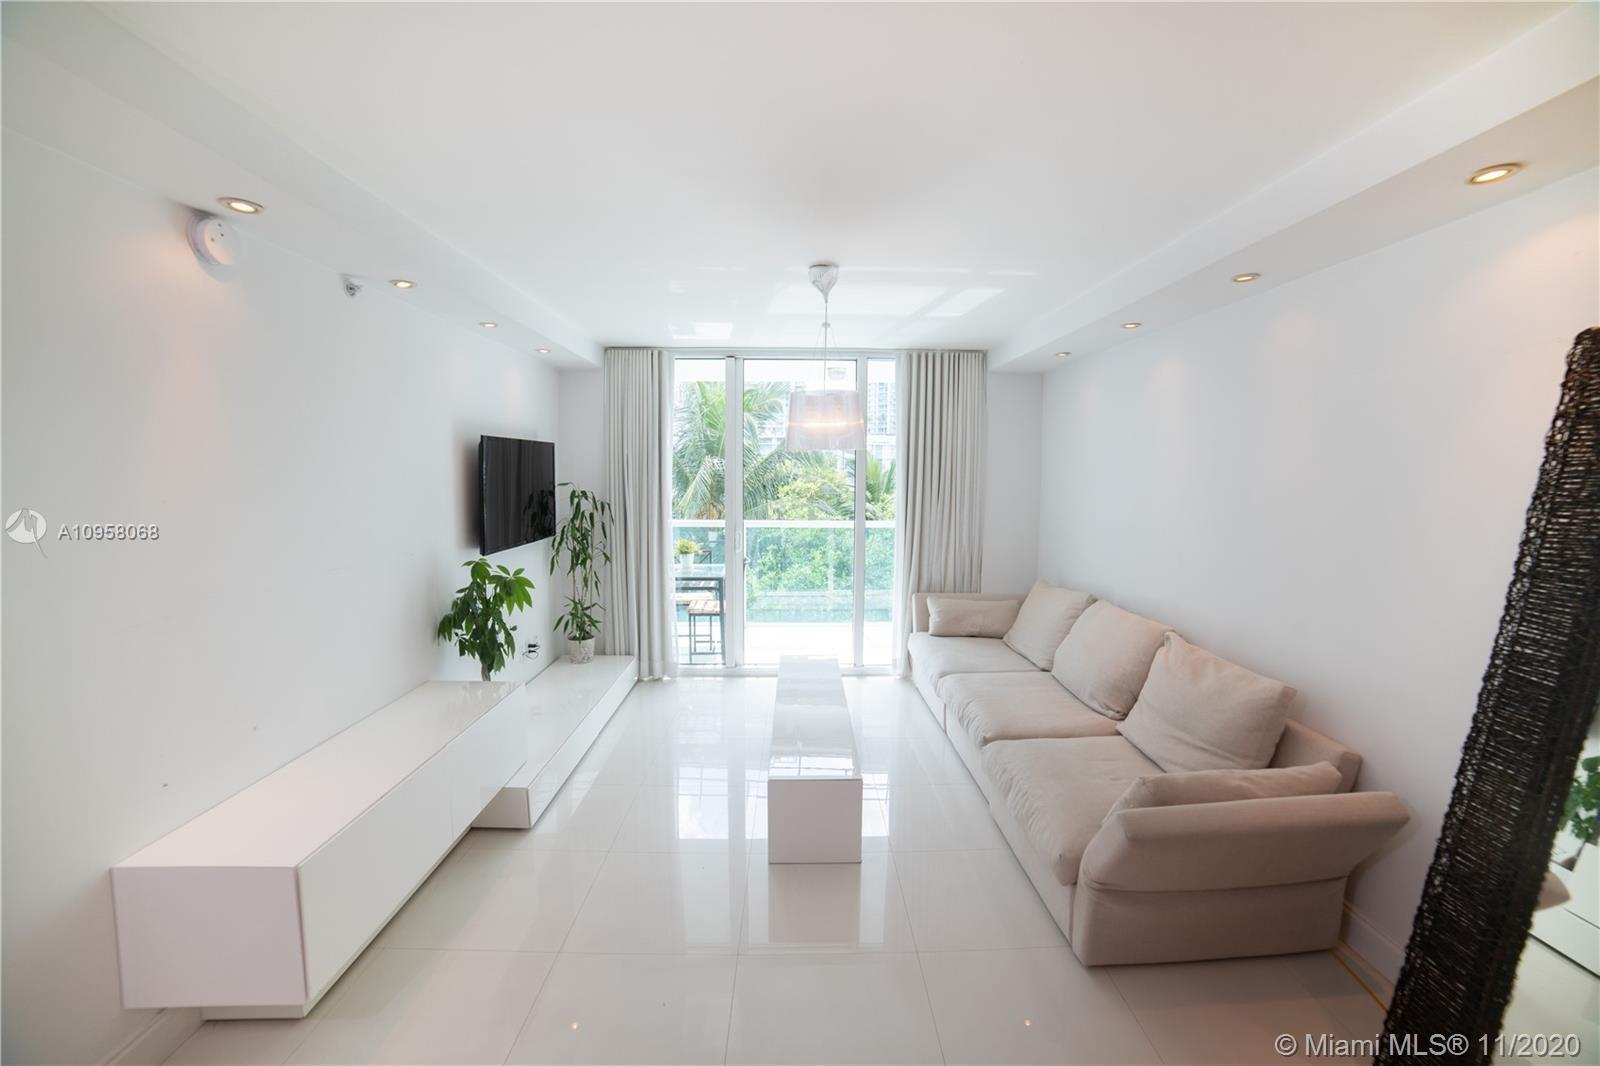 Beautiful remodeled 1bed/1 bath. Amazing view of Miami River and lush landscape. Unit includes. whit